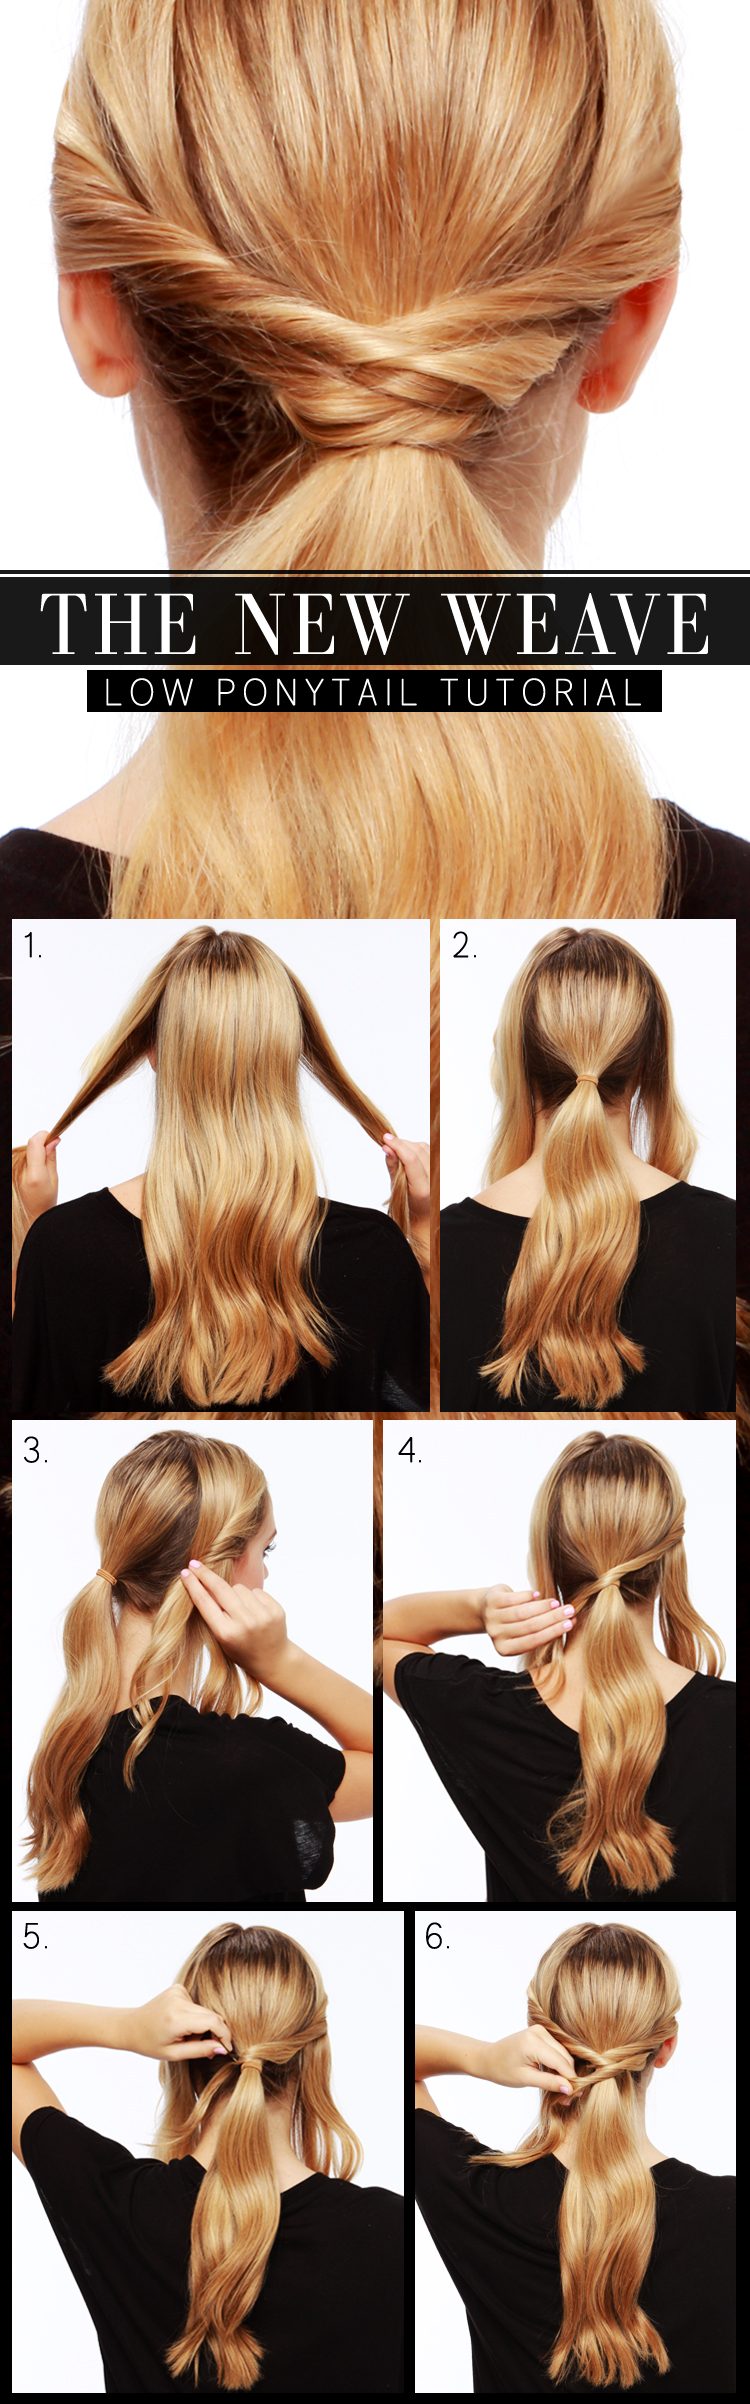 LuLu*s How-To: The New Weave Low Ponytail Tutorial - Lulus.com Fashion ...